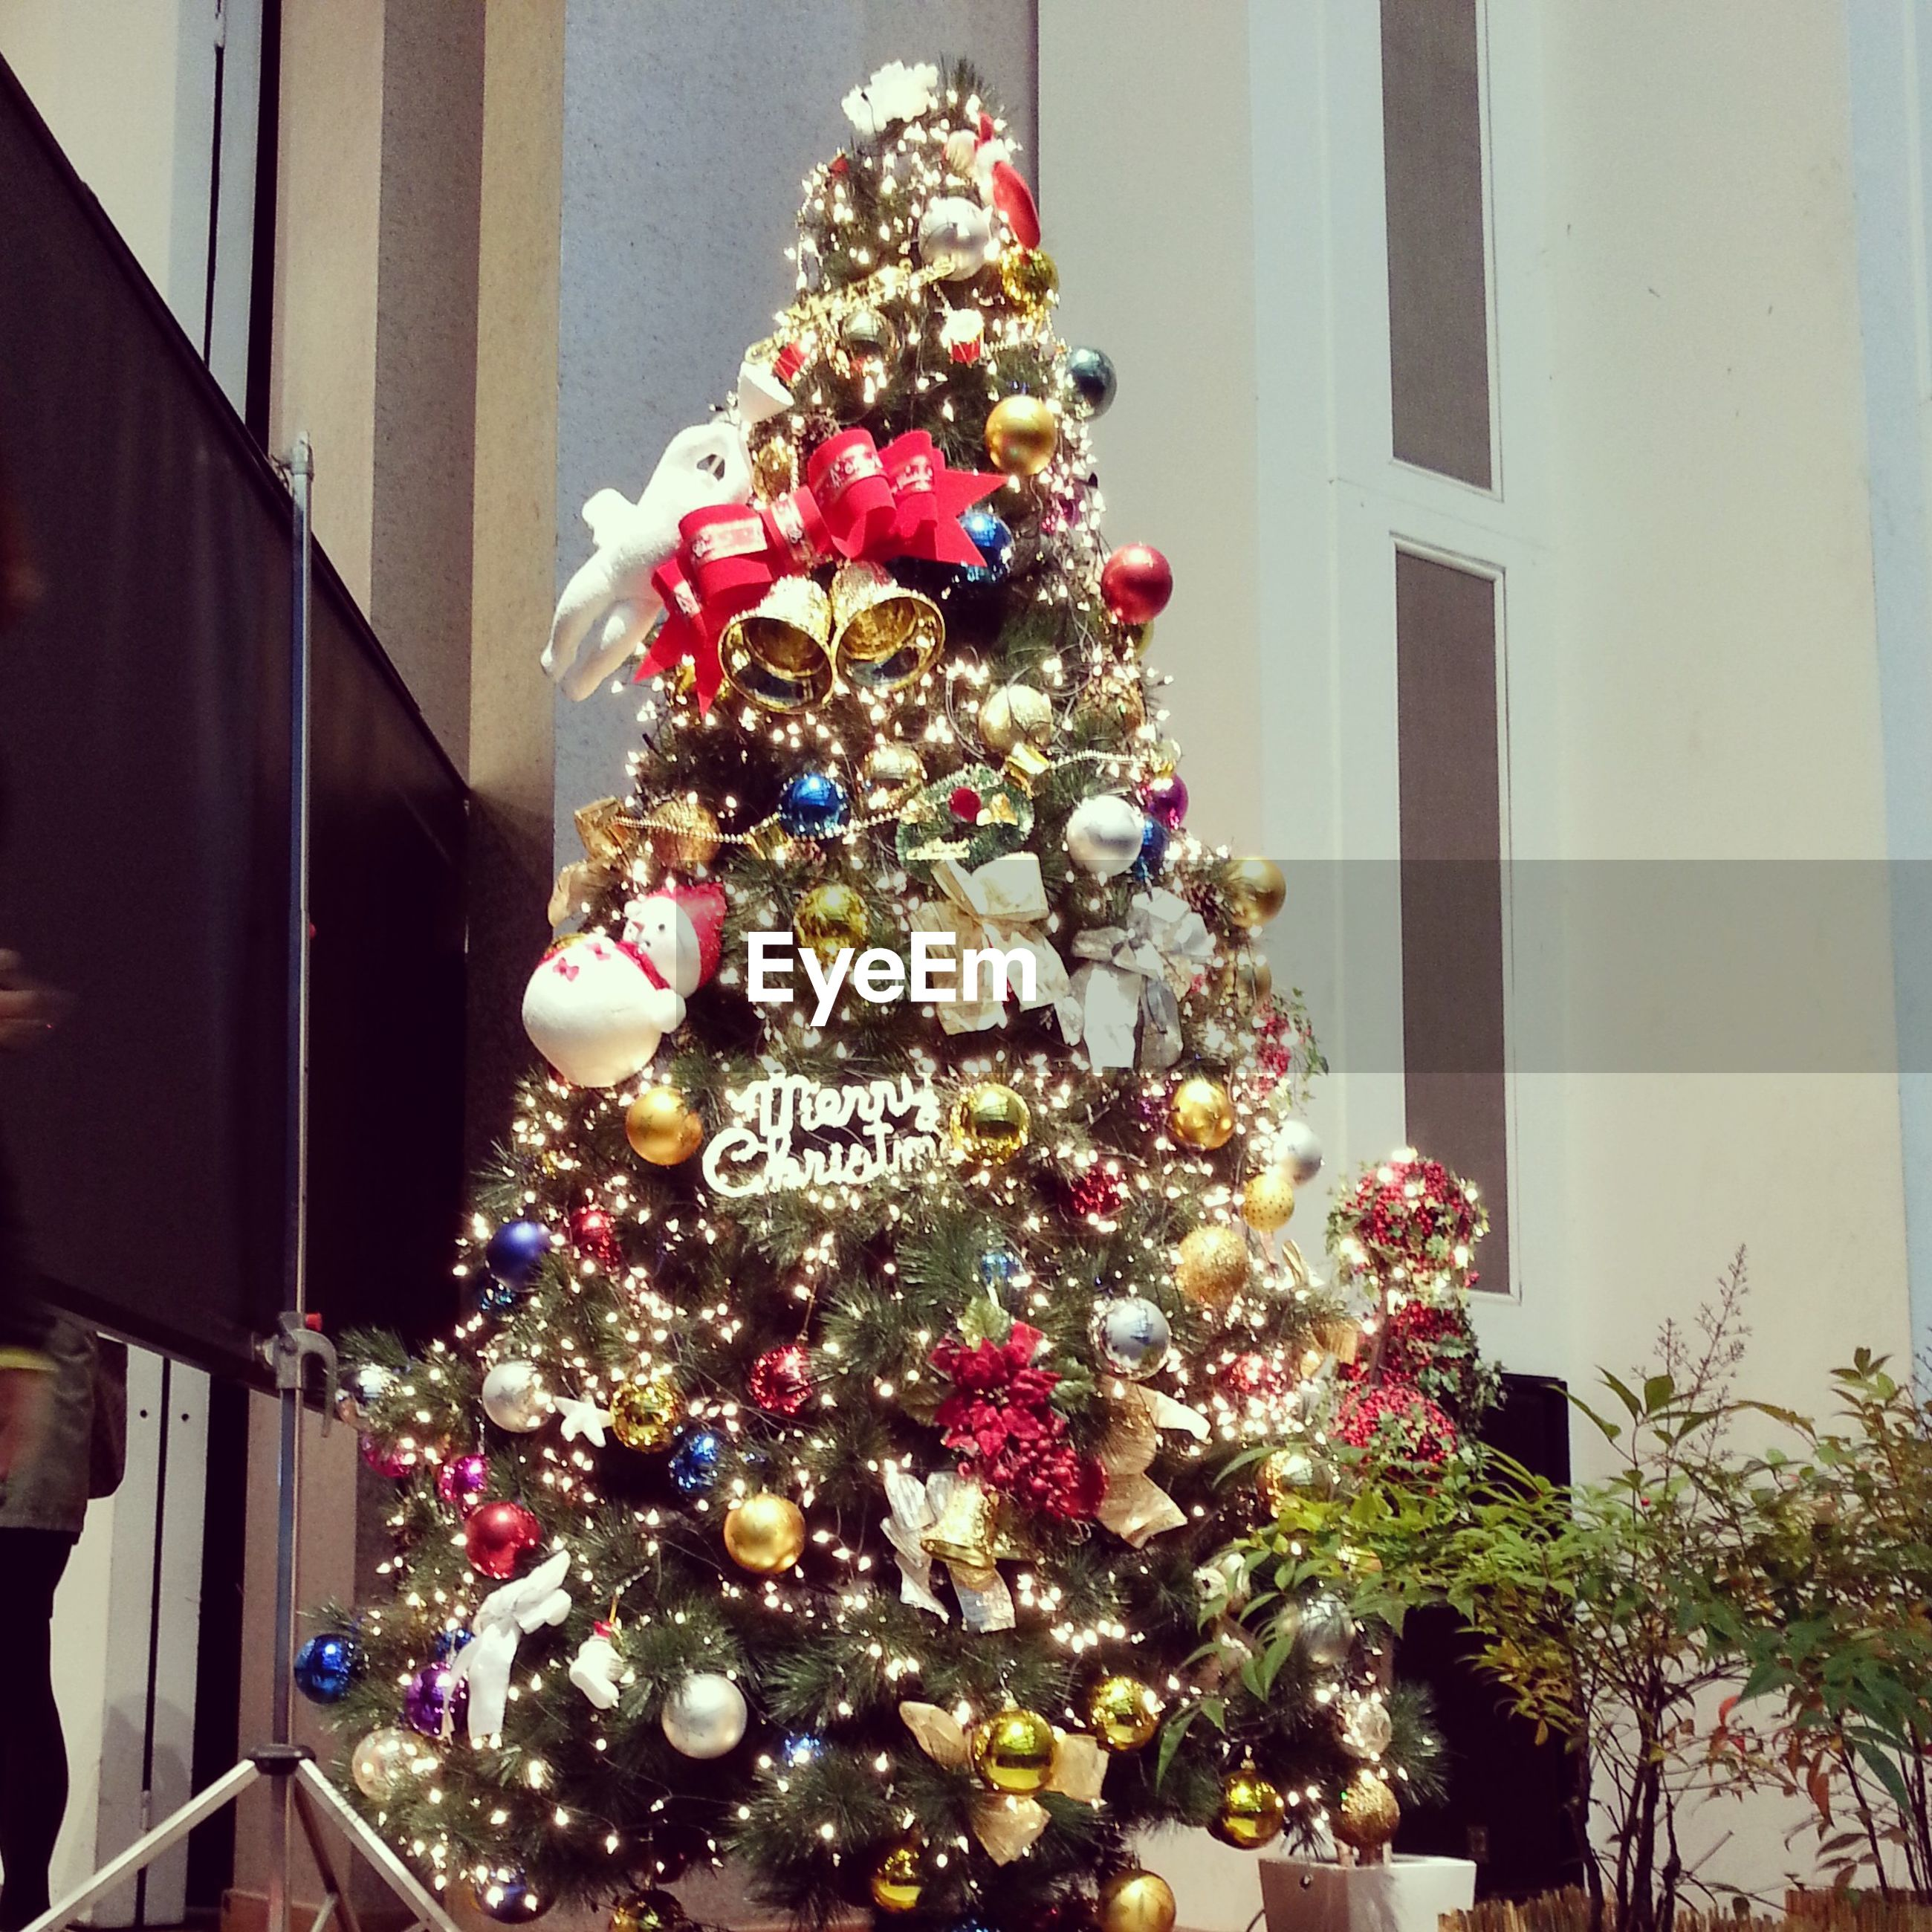 decoration, indoors, flower, architecture, built structure, celebration, low angle view, christmas tree, christmas, hanging, building exterior, tradition, potted plant, freshness, christmas decoration, window, no people, house, decor, home interior